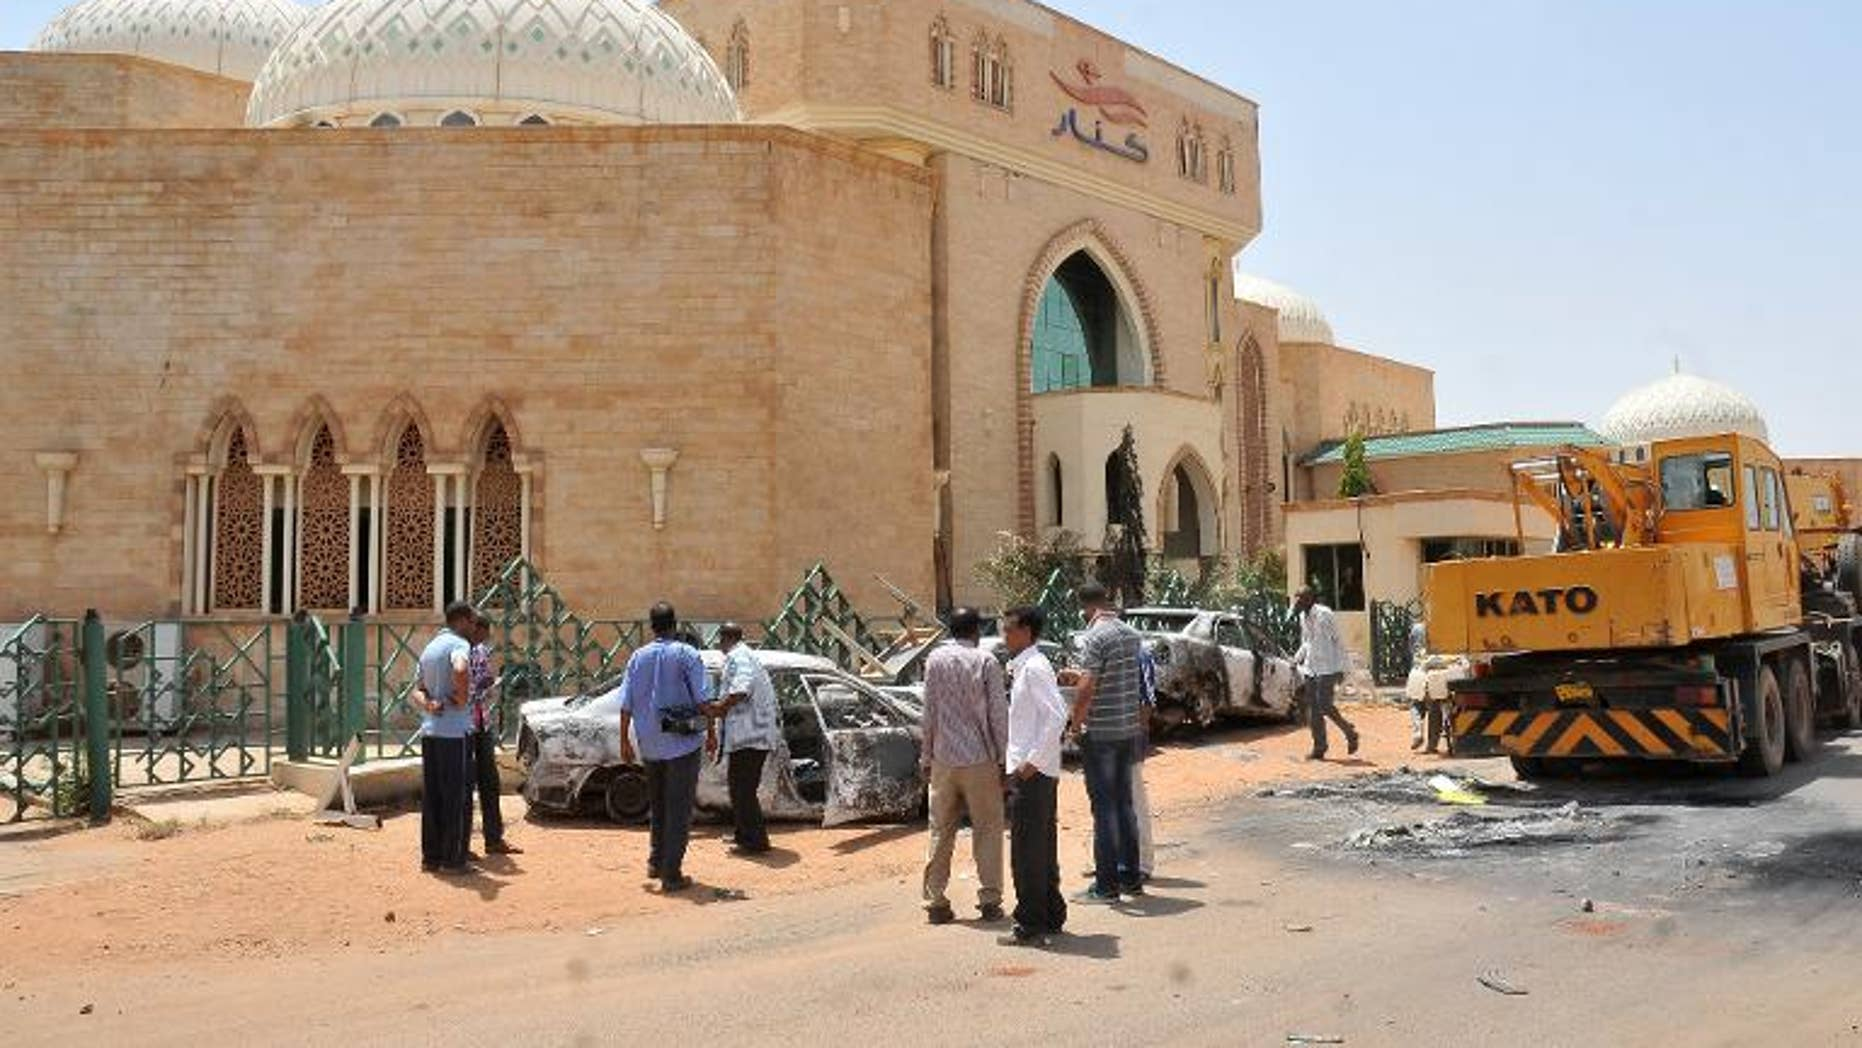 People look at burnt vehicles on September 26, 2013 in the Sudanese capital Khartoum after rioting erupted following a decision by the government to scrap fuel subsidies